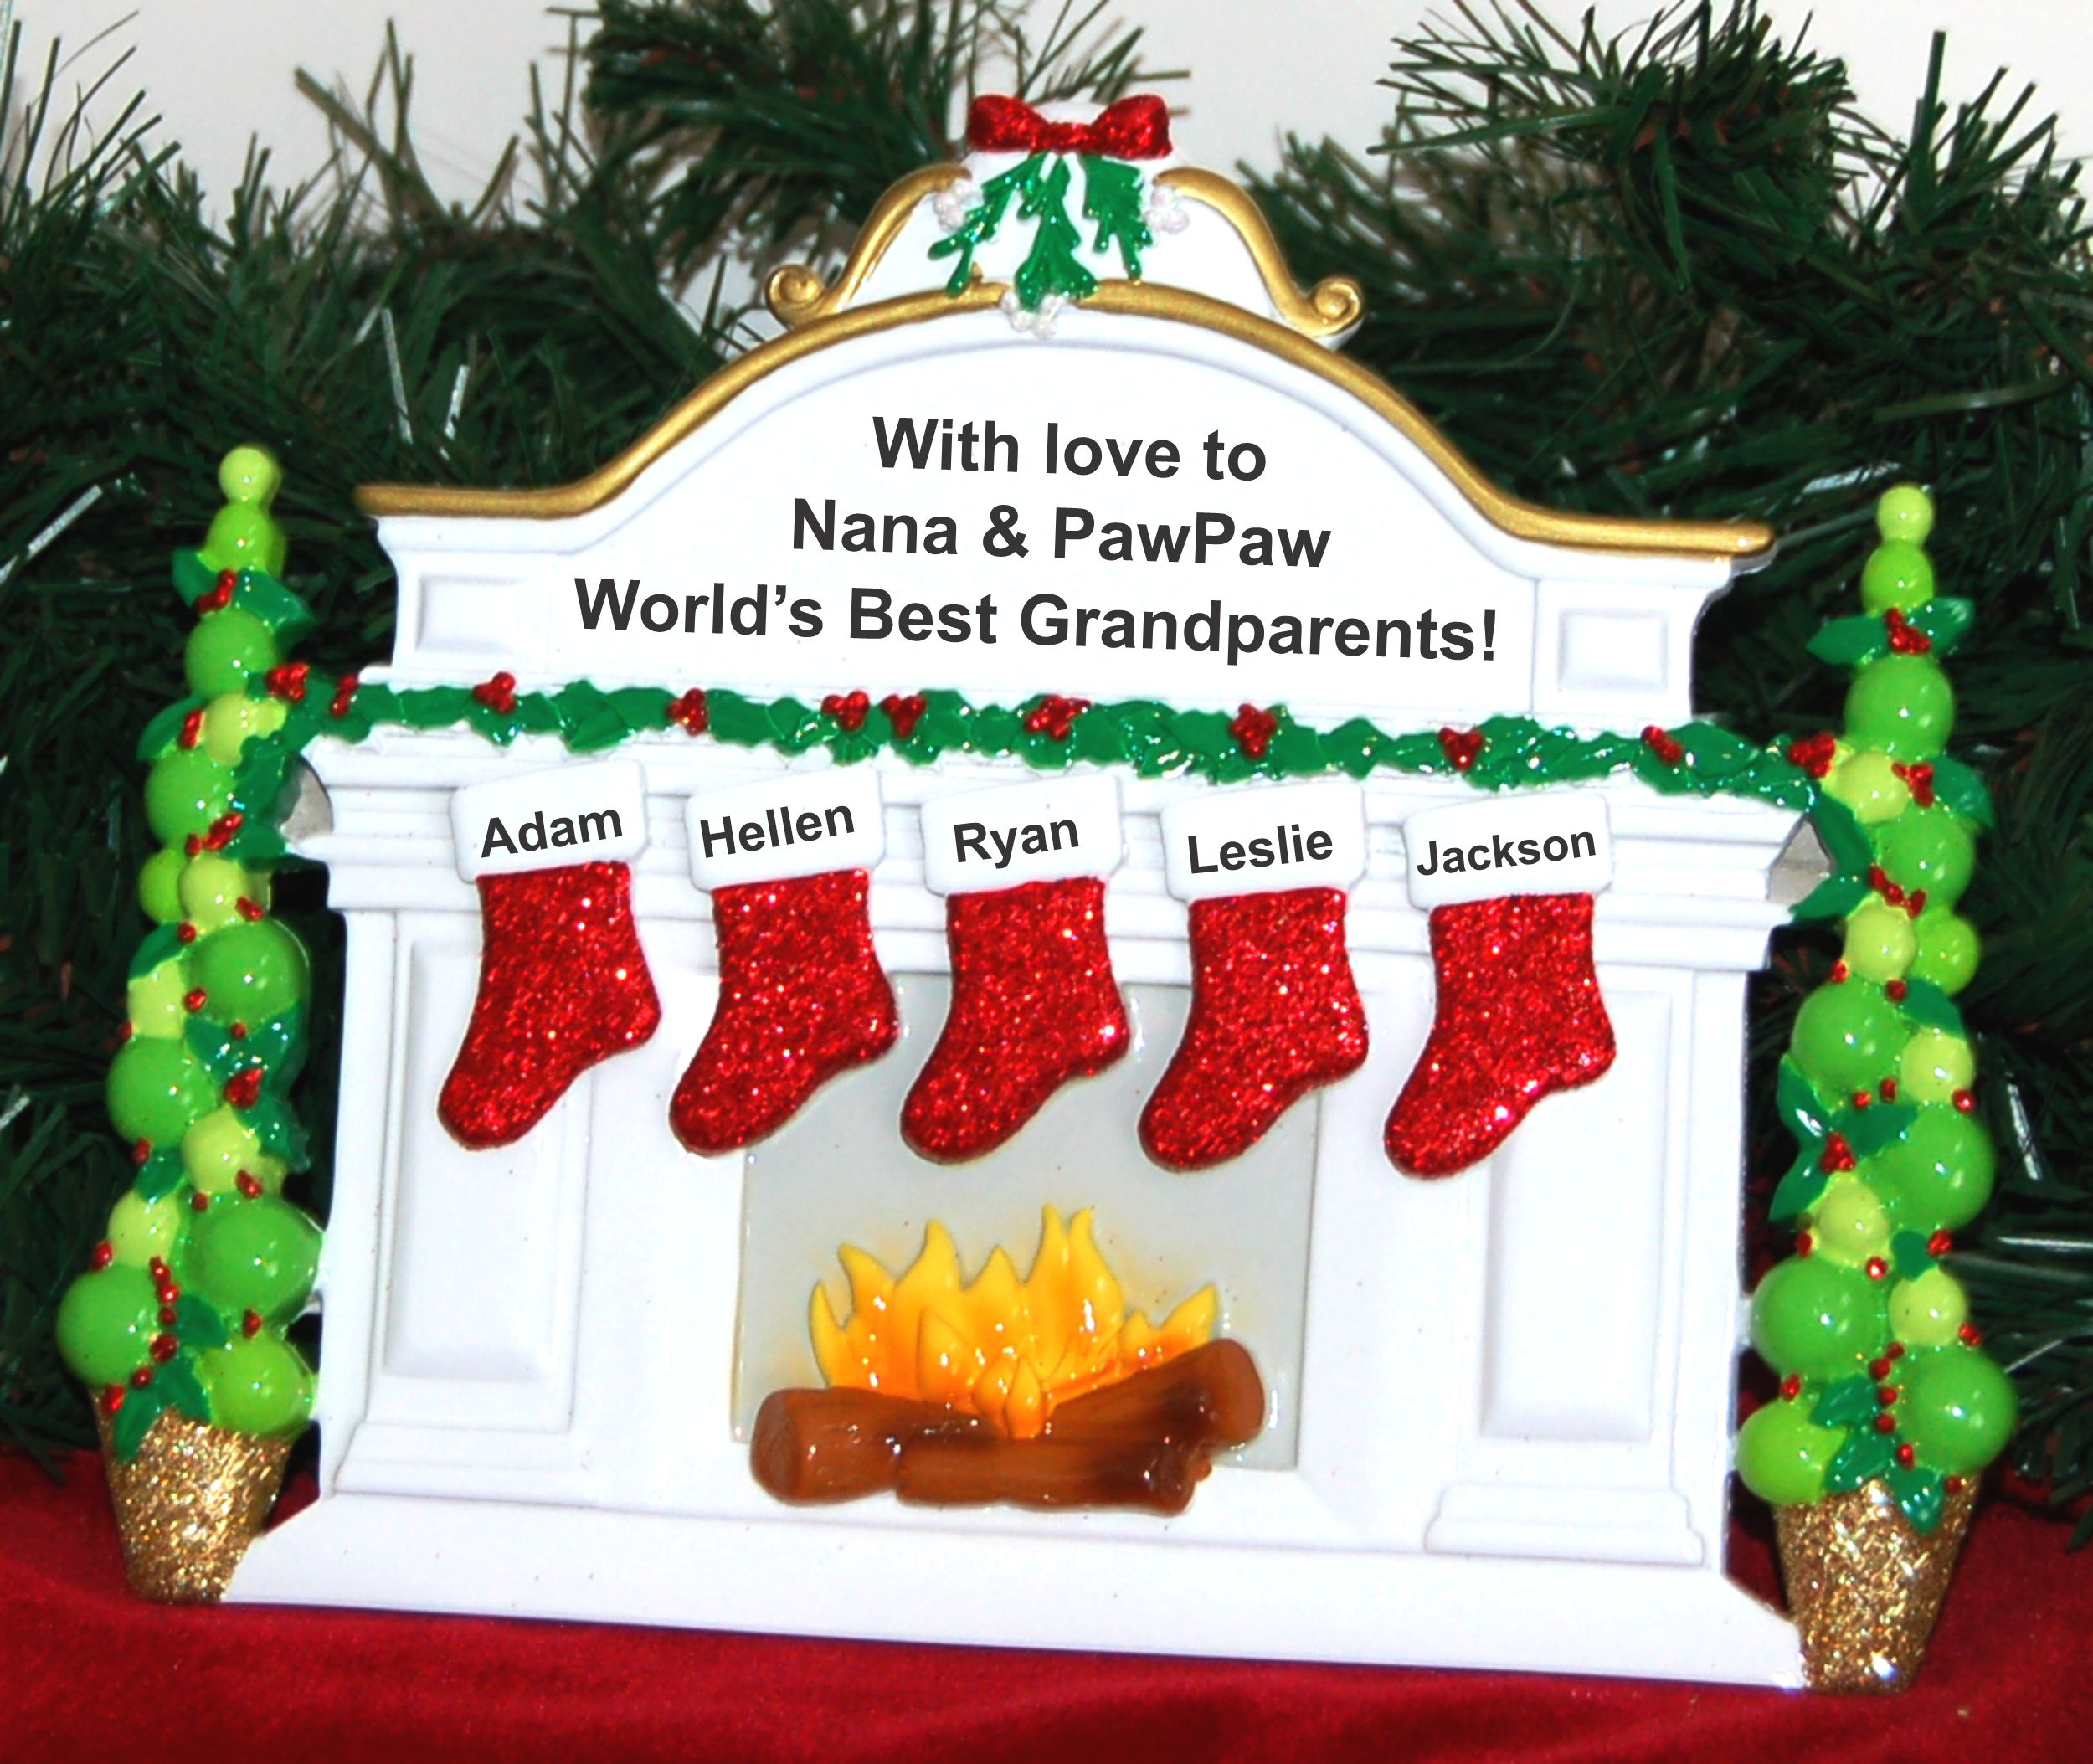 Personalized Grandparents Tabletop Christmas Decoration 5 Grandkids by Russell Rhodes